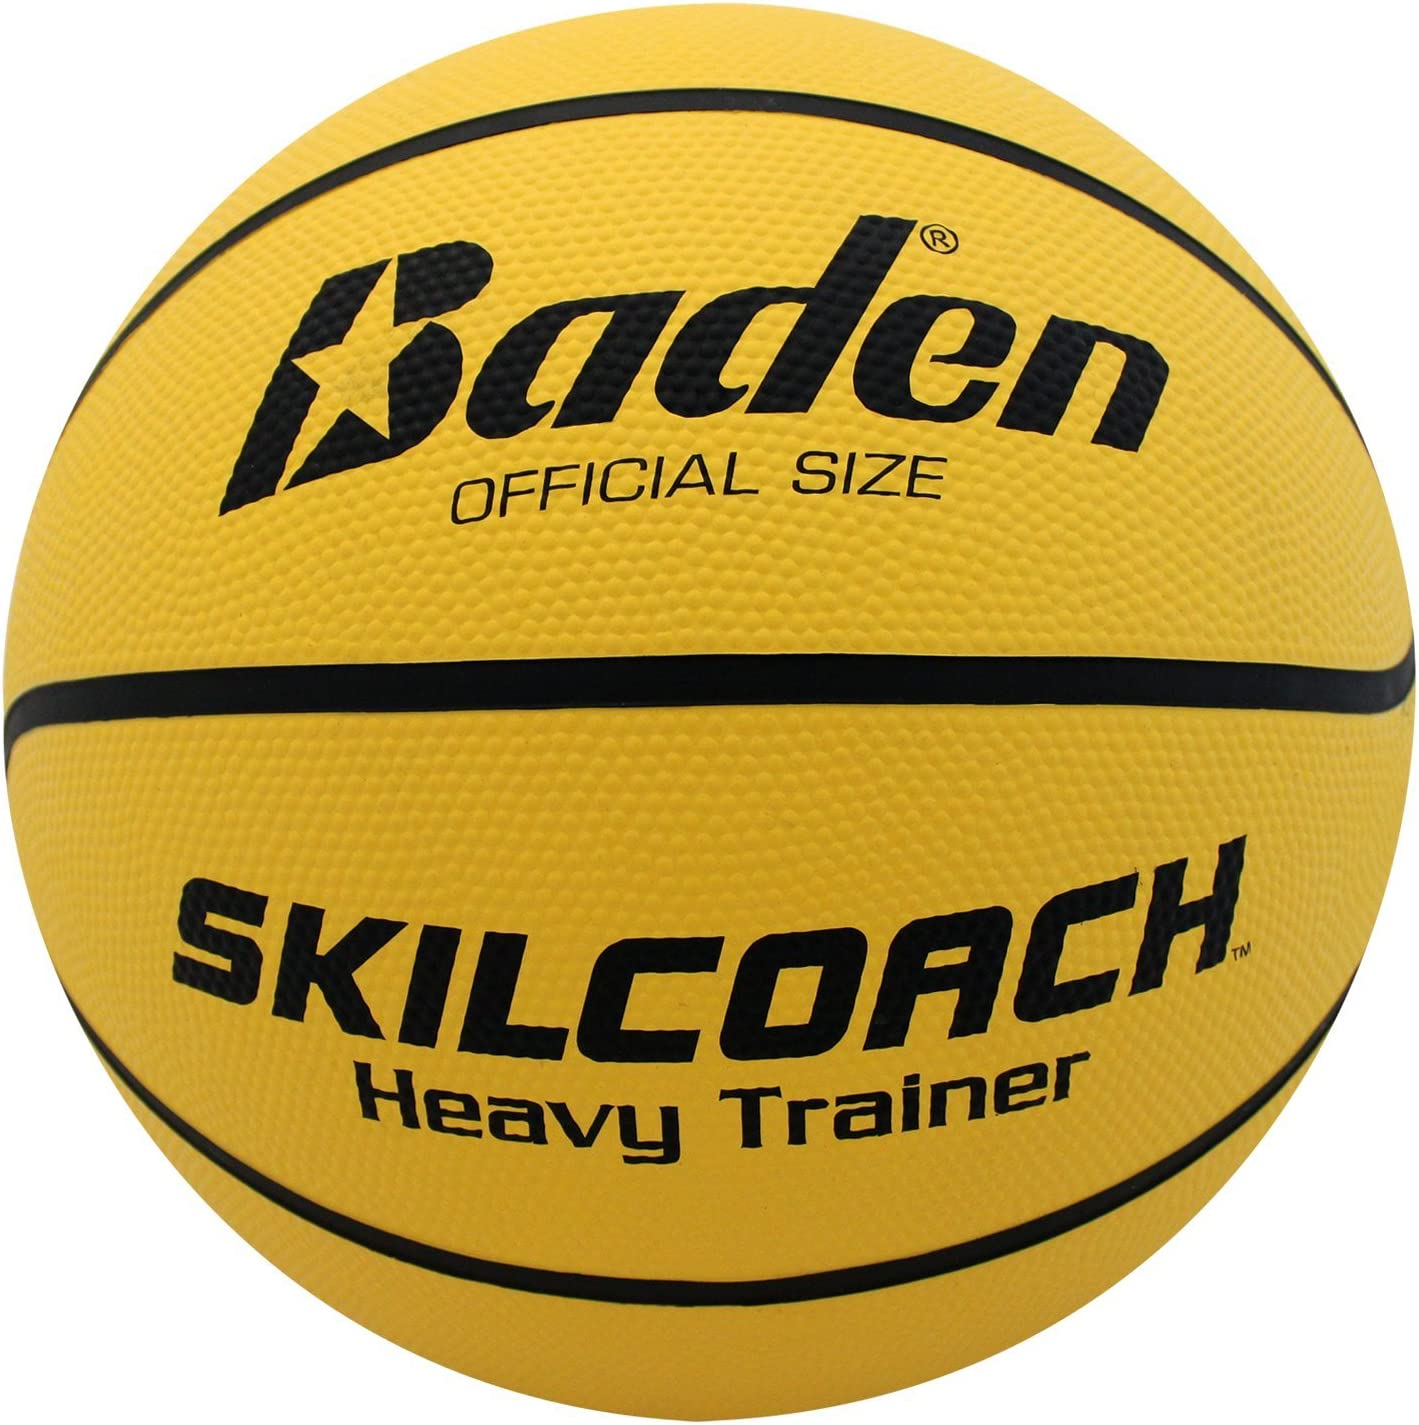 #1 Baden SkilCoach Heavy Trainer Rubber Basketball